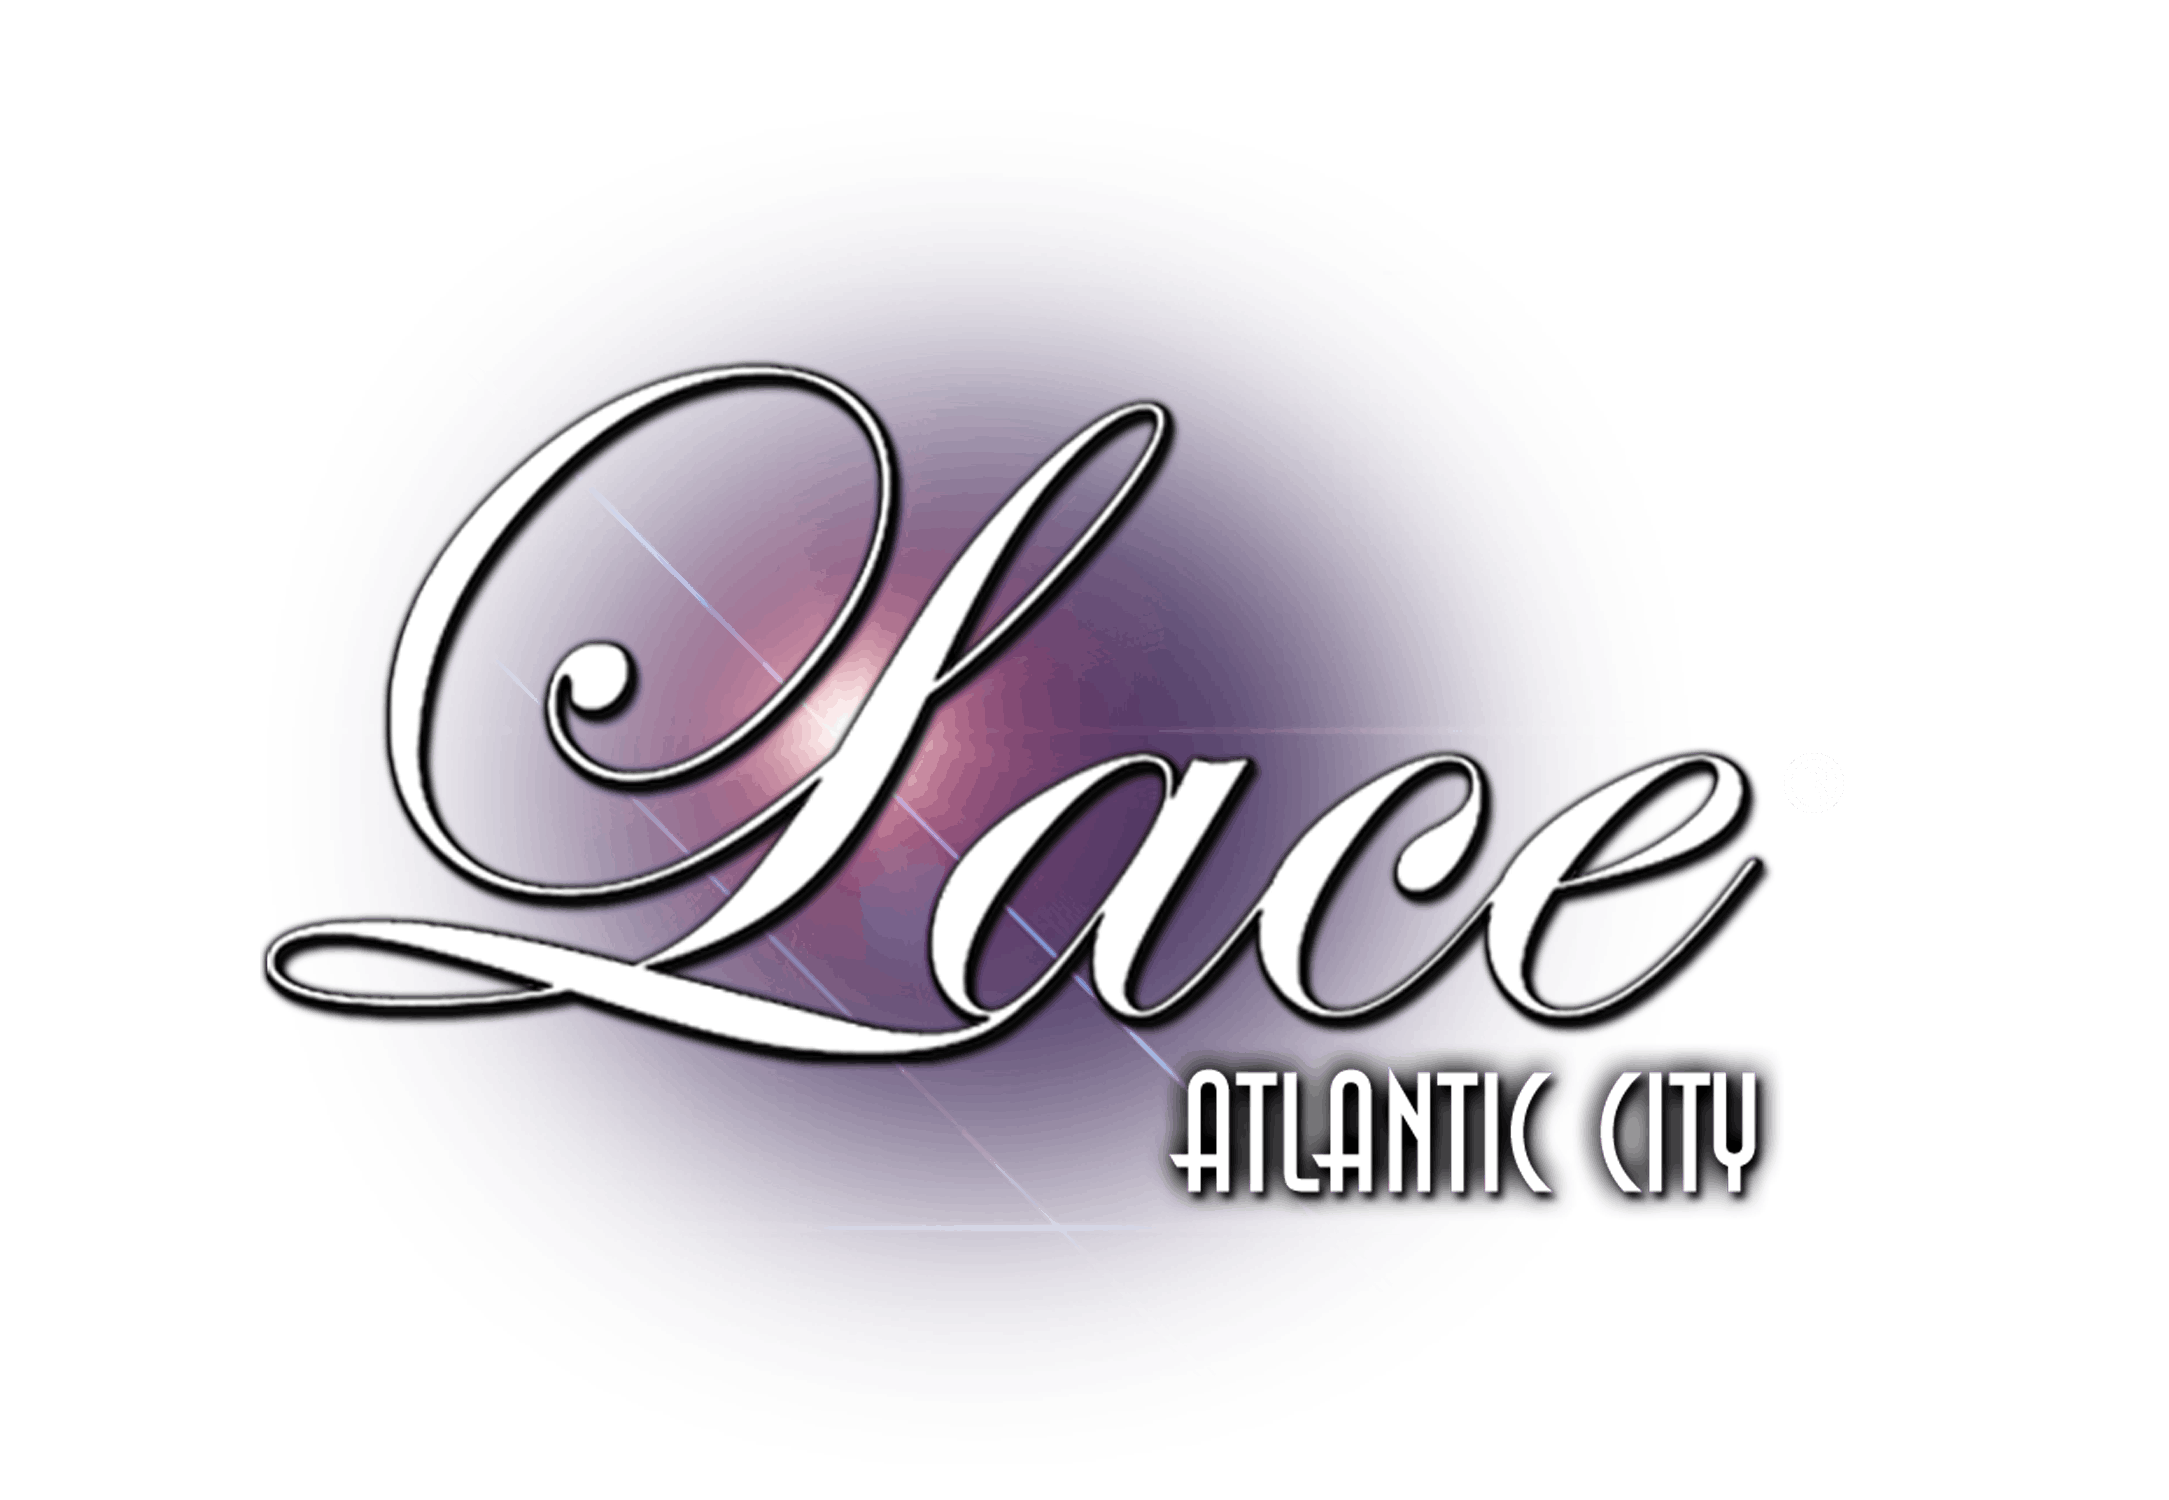 After Hours Fridays @ Lace Nightclub in Atlantic City - FREE Limo Ride